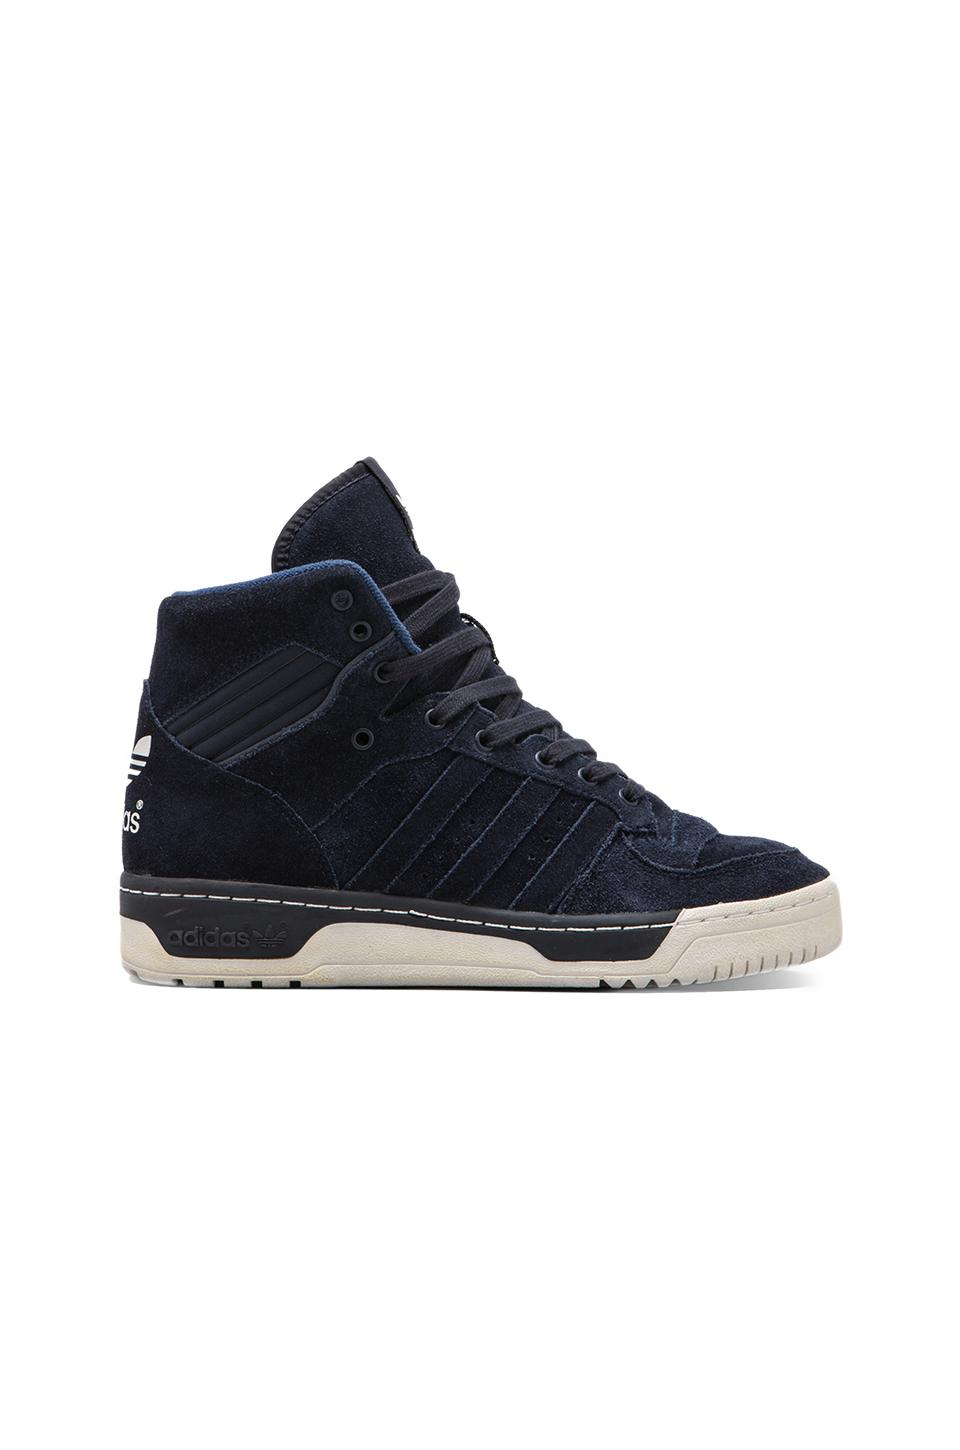 adidas Originals BLUE Rivalry HI in Legend Ink/Legend Ink/White Vapour